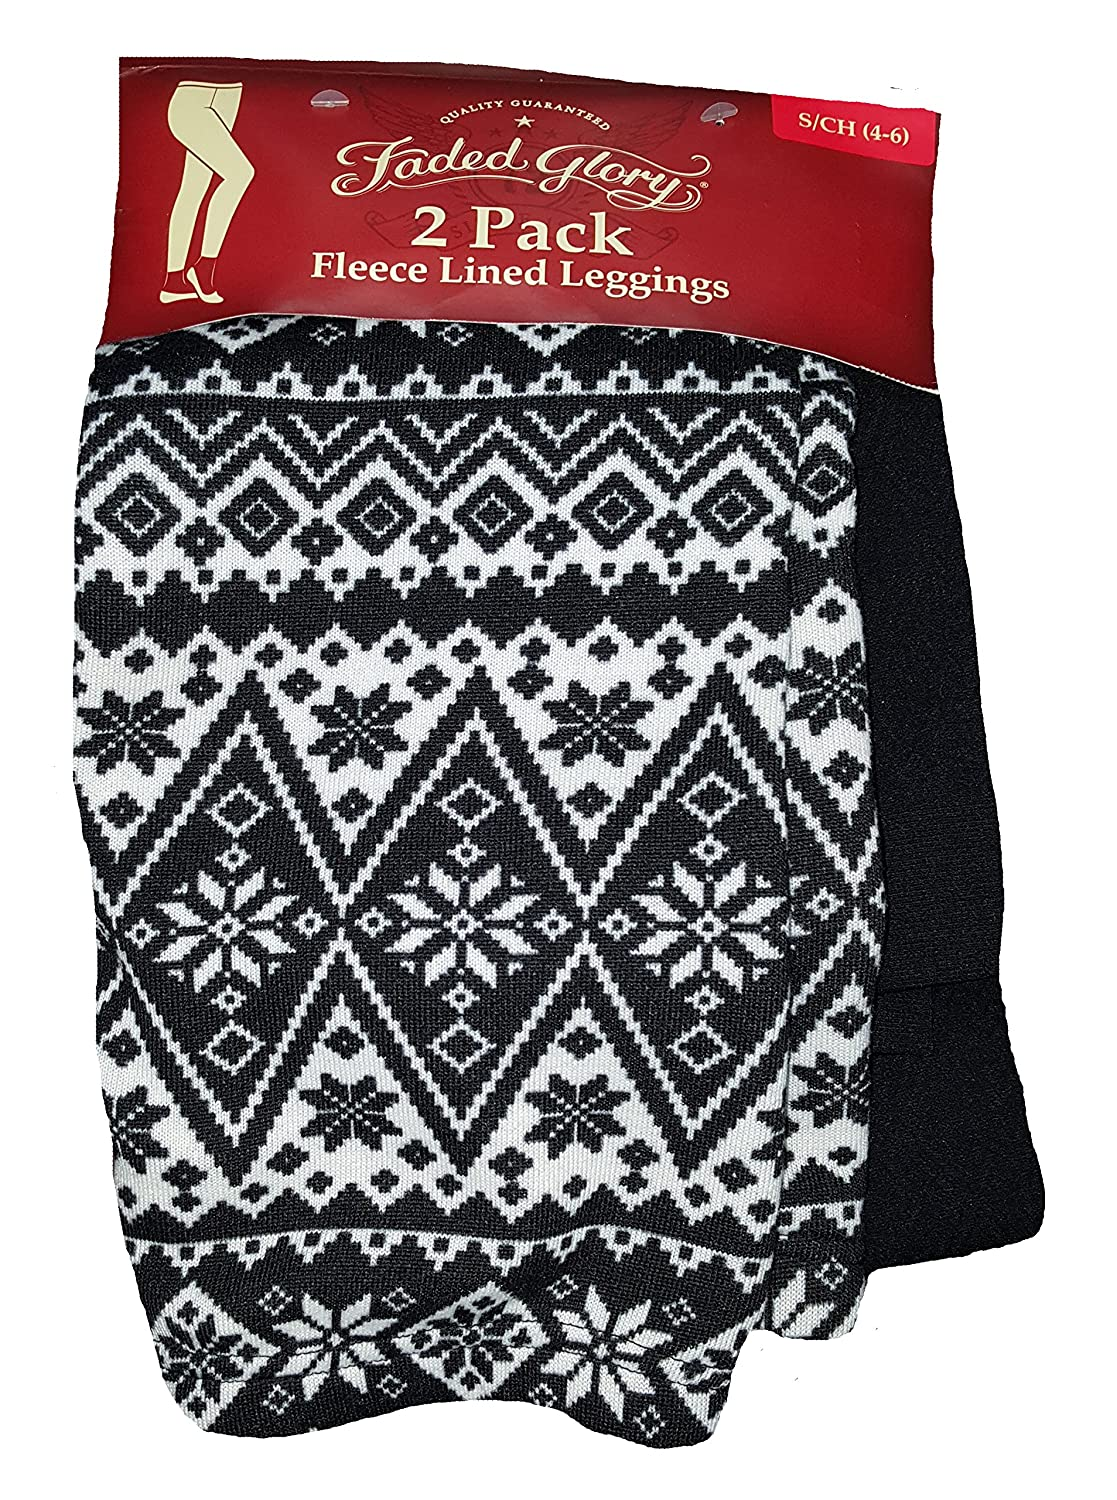 Christmas Black & White Snowflakes Fair Isle & Black 2 Pack Fleece Lined Leggings